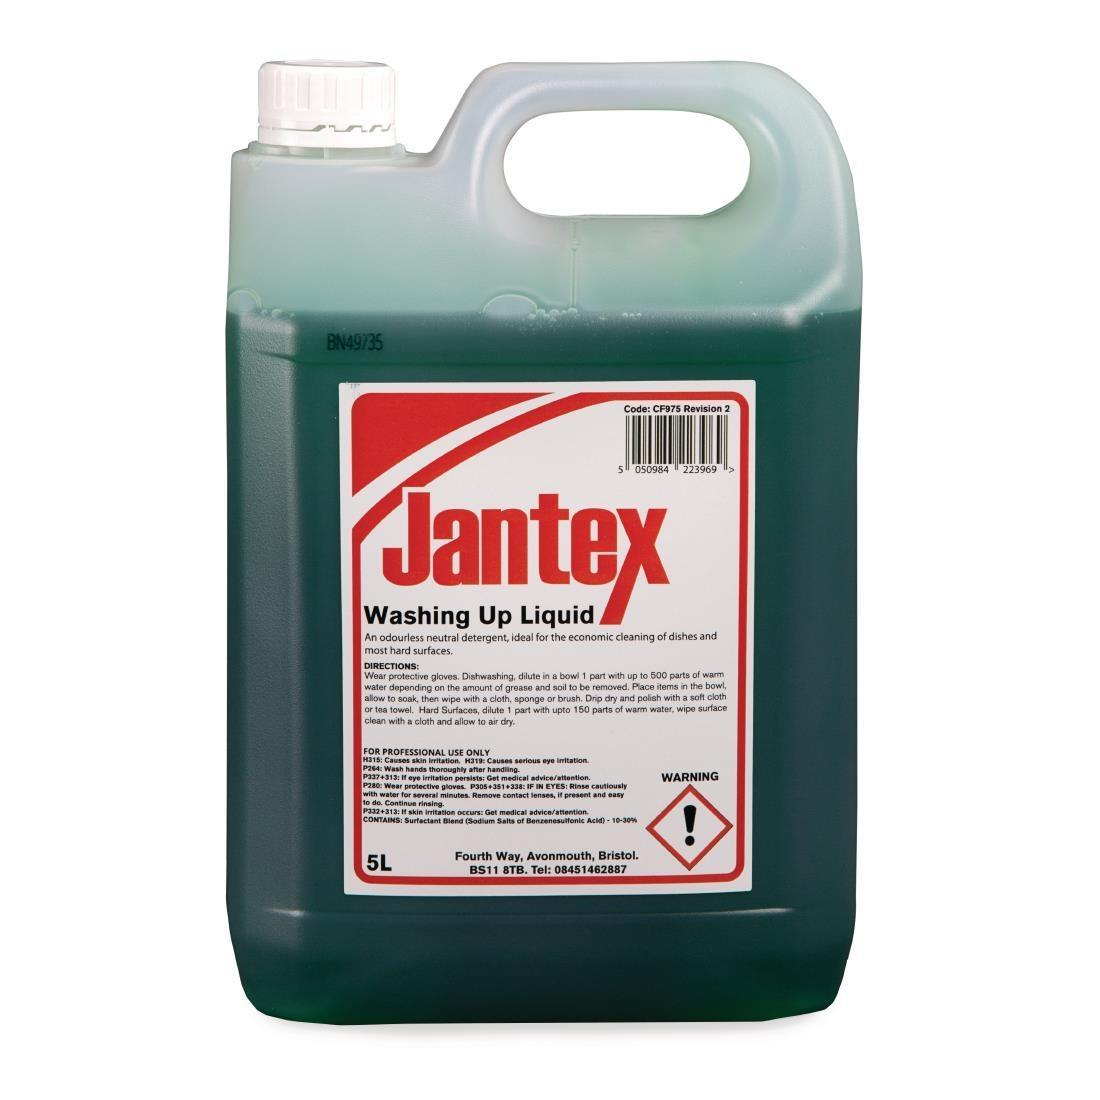 Jantex Washing Up Liquid 5 Litre